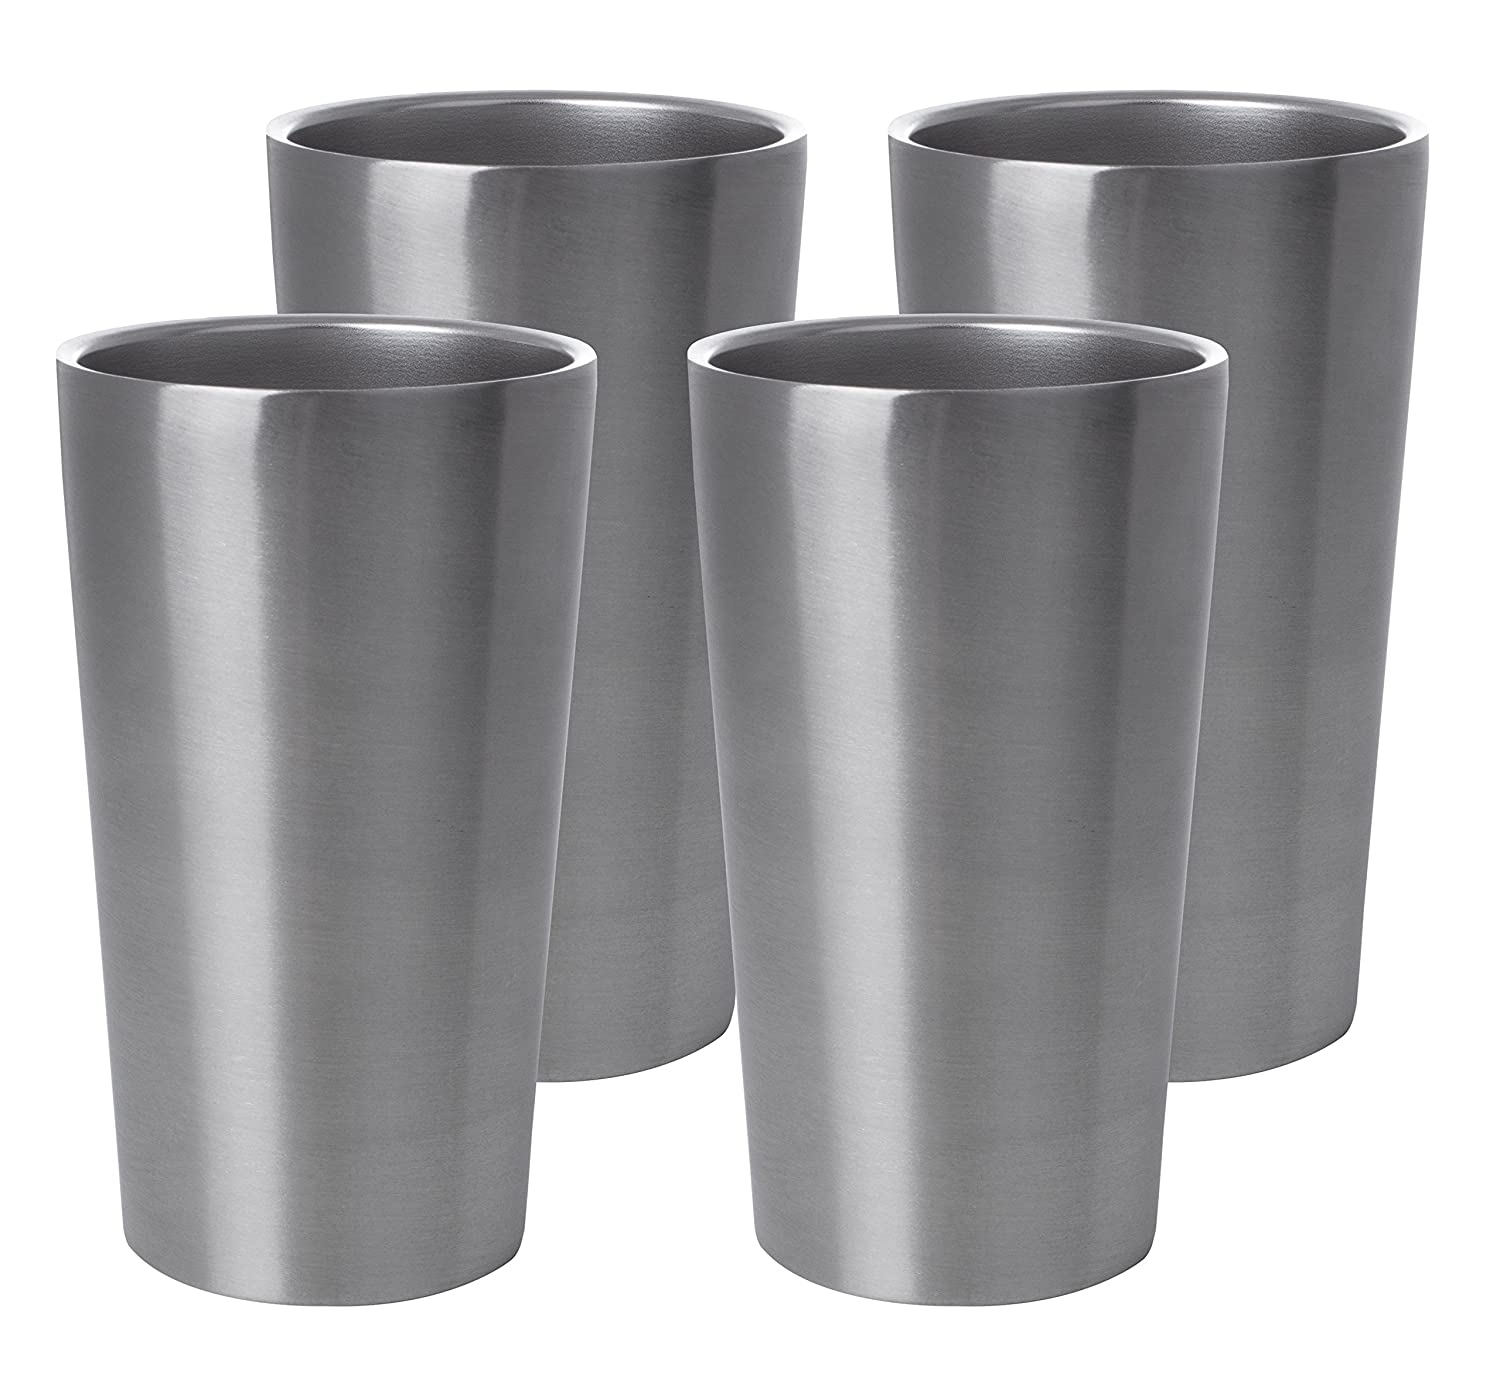 Maxam Stainless-Steel 4-piece Double Wall 13 oz. Tumbler Set, Unbreakable Drinking Containers Ideal for Outdoor Use